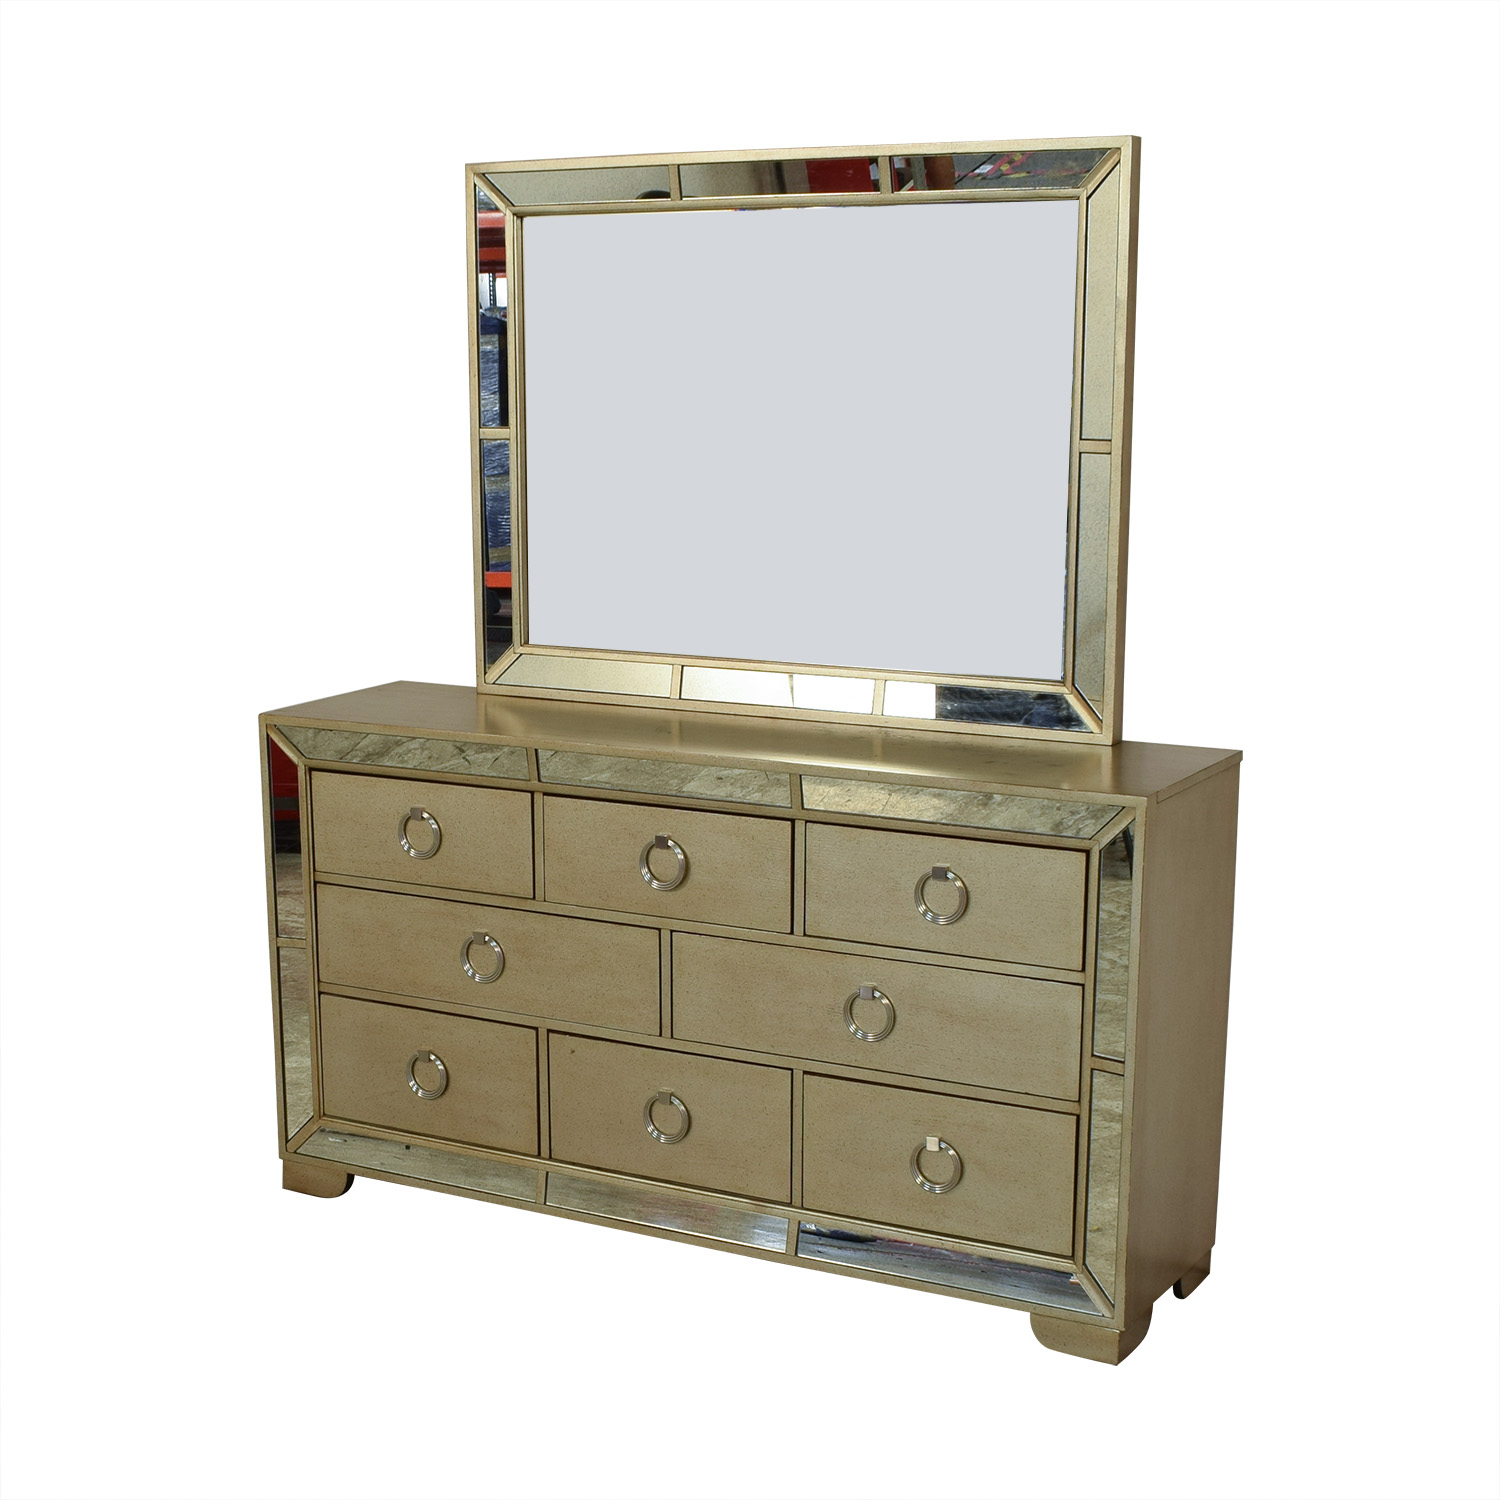 Macy's Macy's Ailey Collection Dresser with Mirror on sale